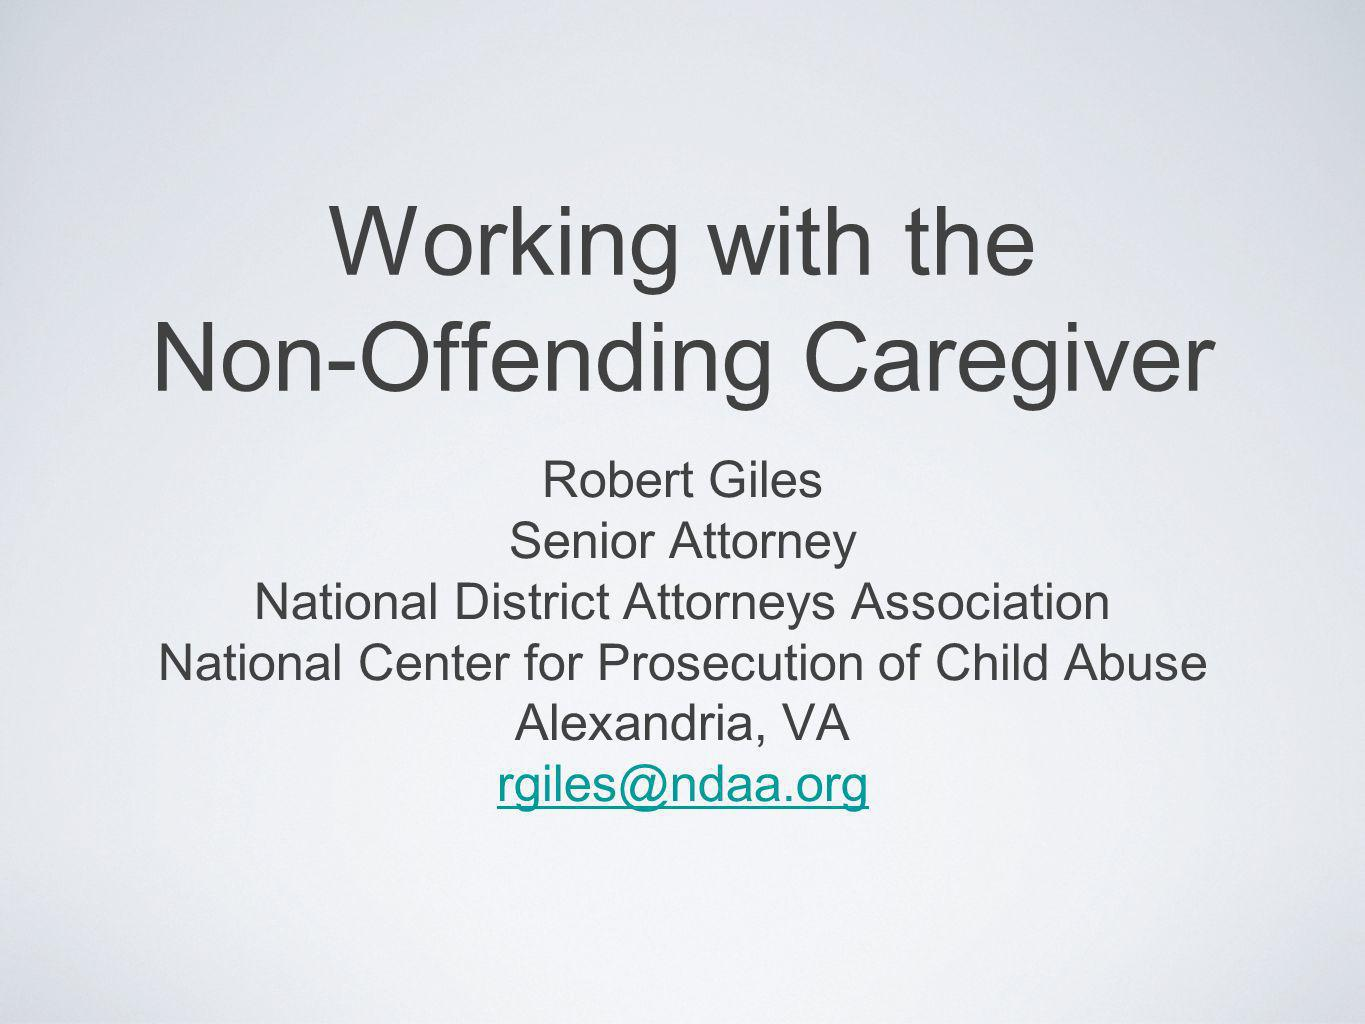 Working with the Non-Offending Caregiver Robert Giles Senior Attorney National District Attorneys Association National Center for Prosecution of Child